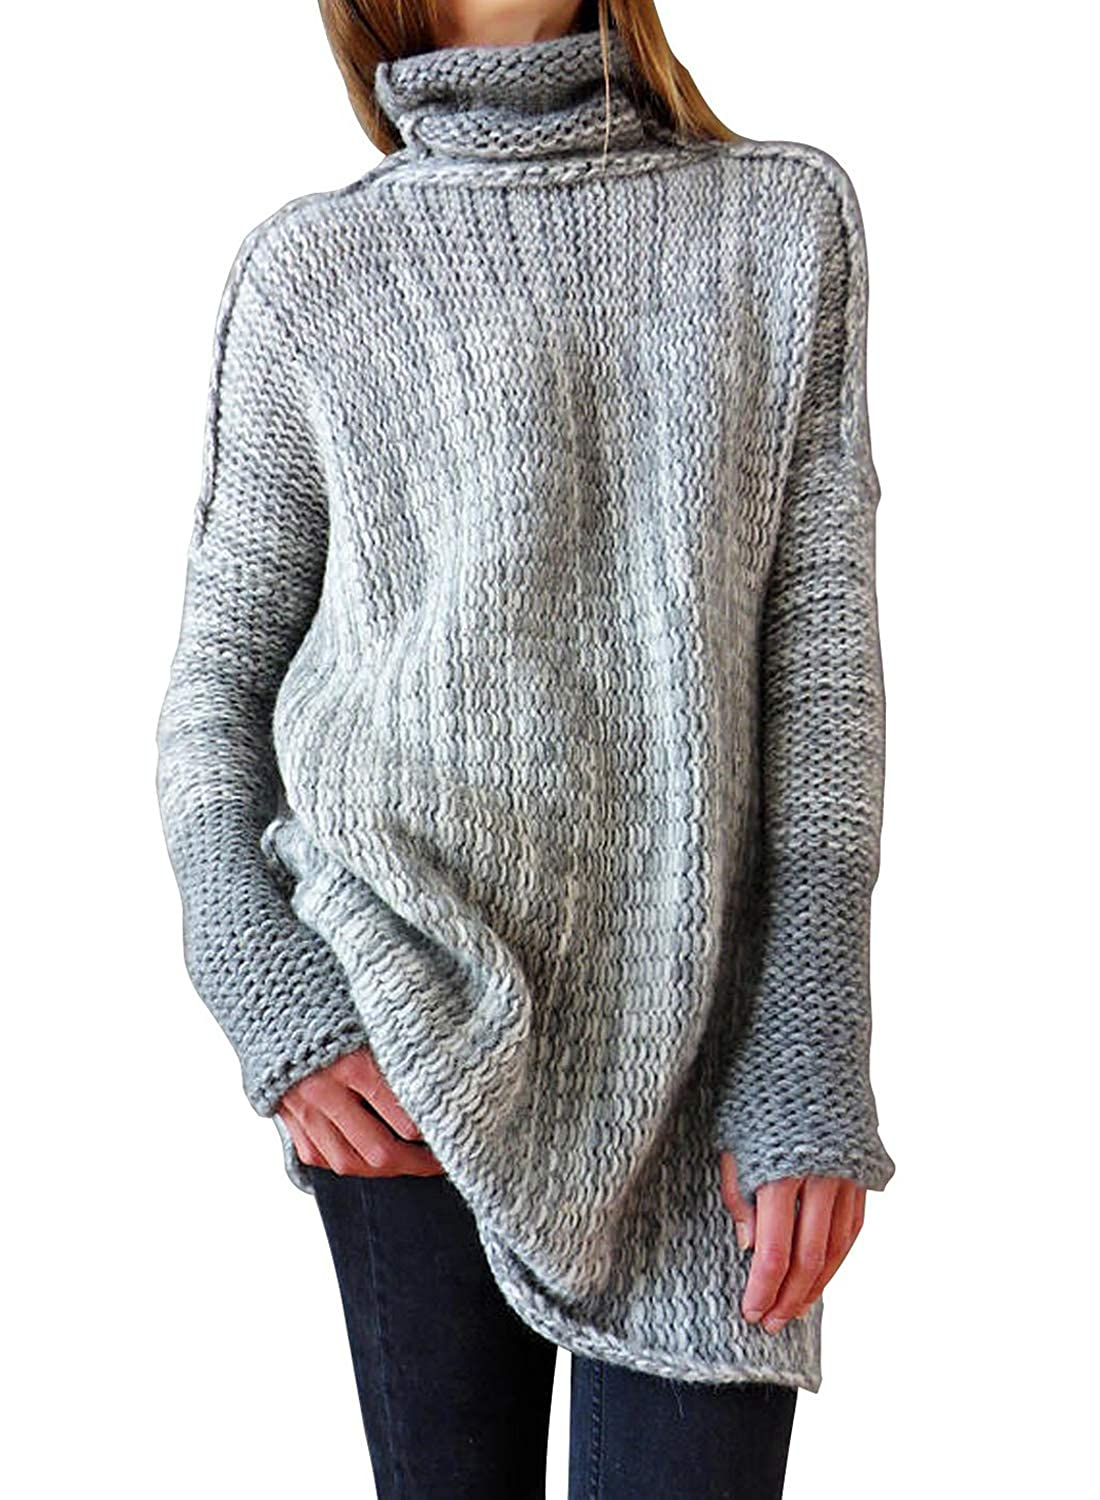 5d4afeeac76 Top 10 wholesale Chunky High Neck Sweater - Chinabrands.com